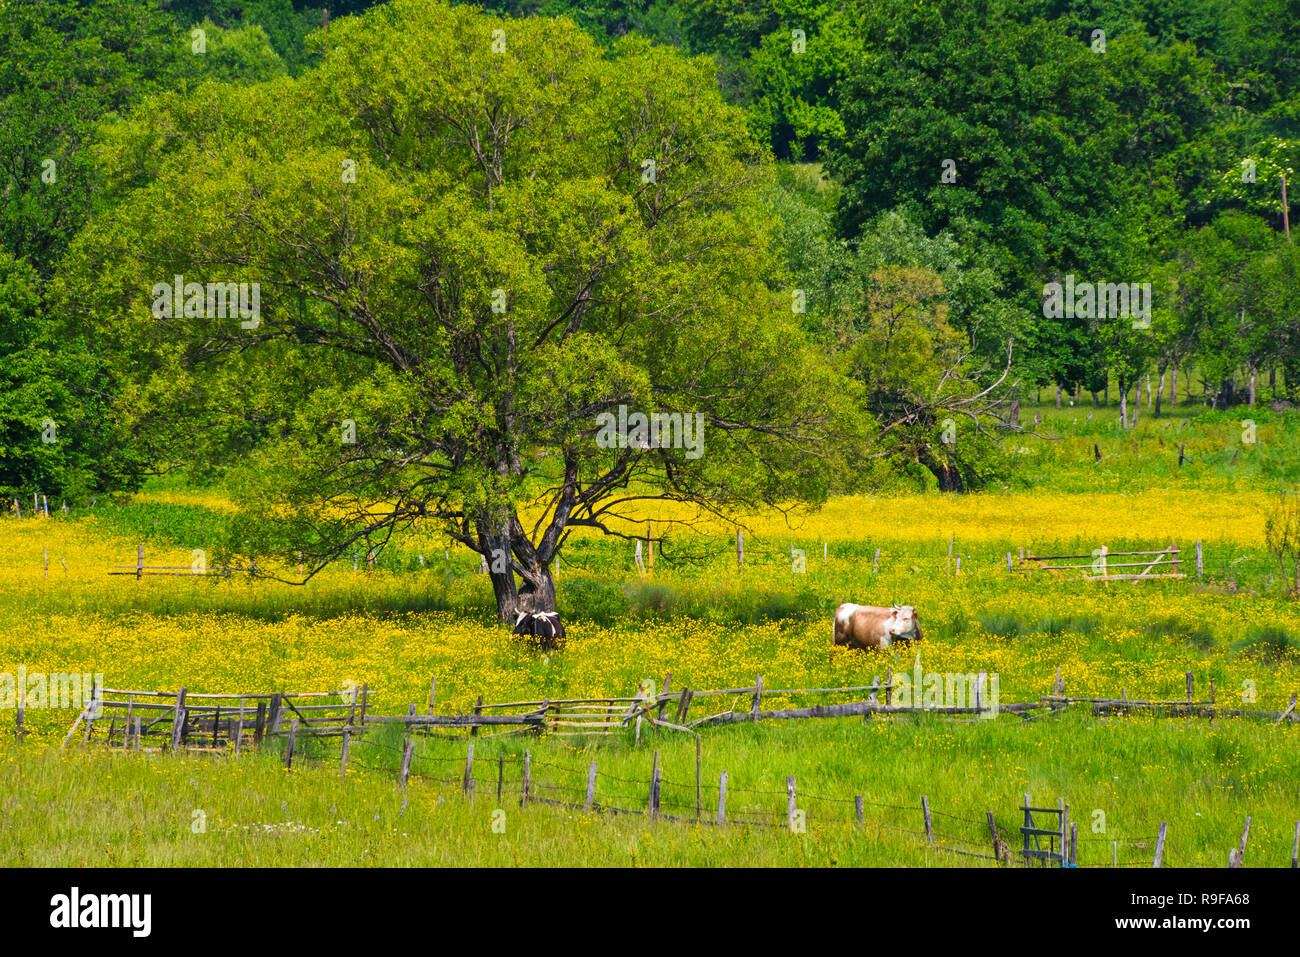 Village and cattle grazing on meadow, southern Bosnia and Herzegovina - Stock Image